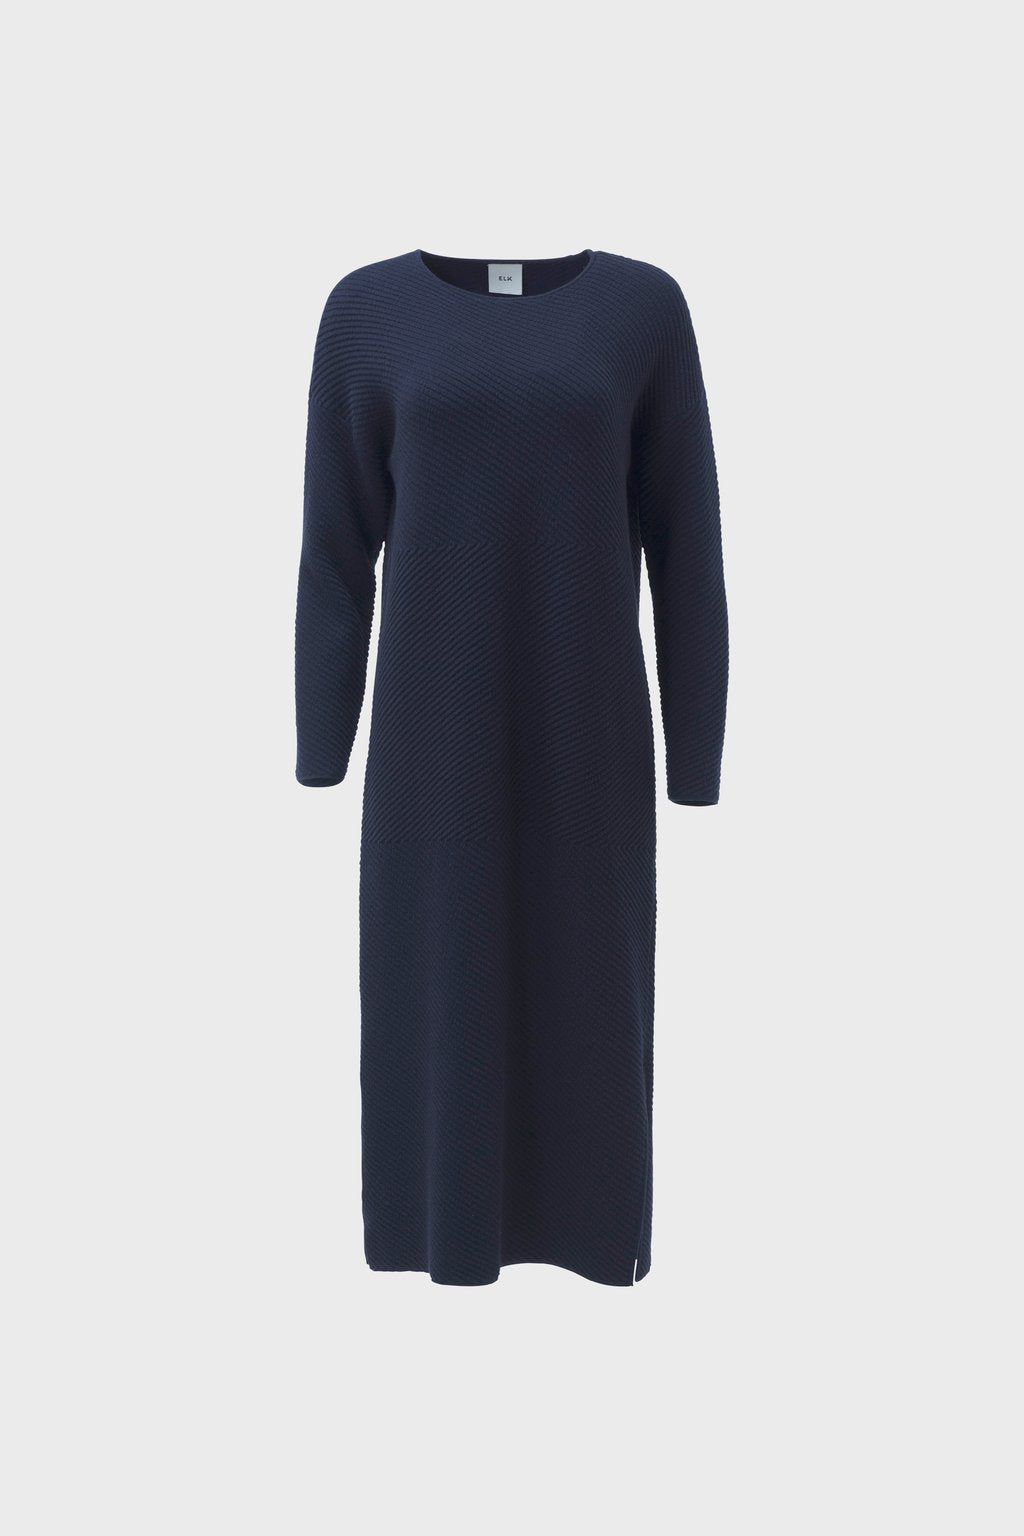 Glenna Knit Dress